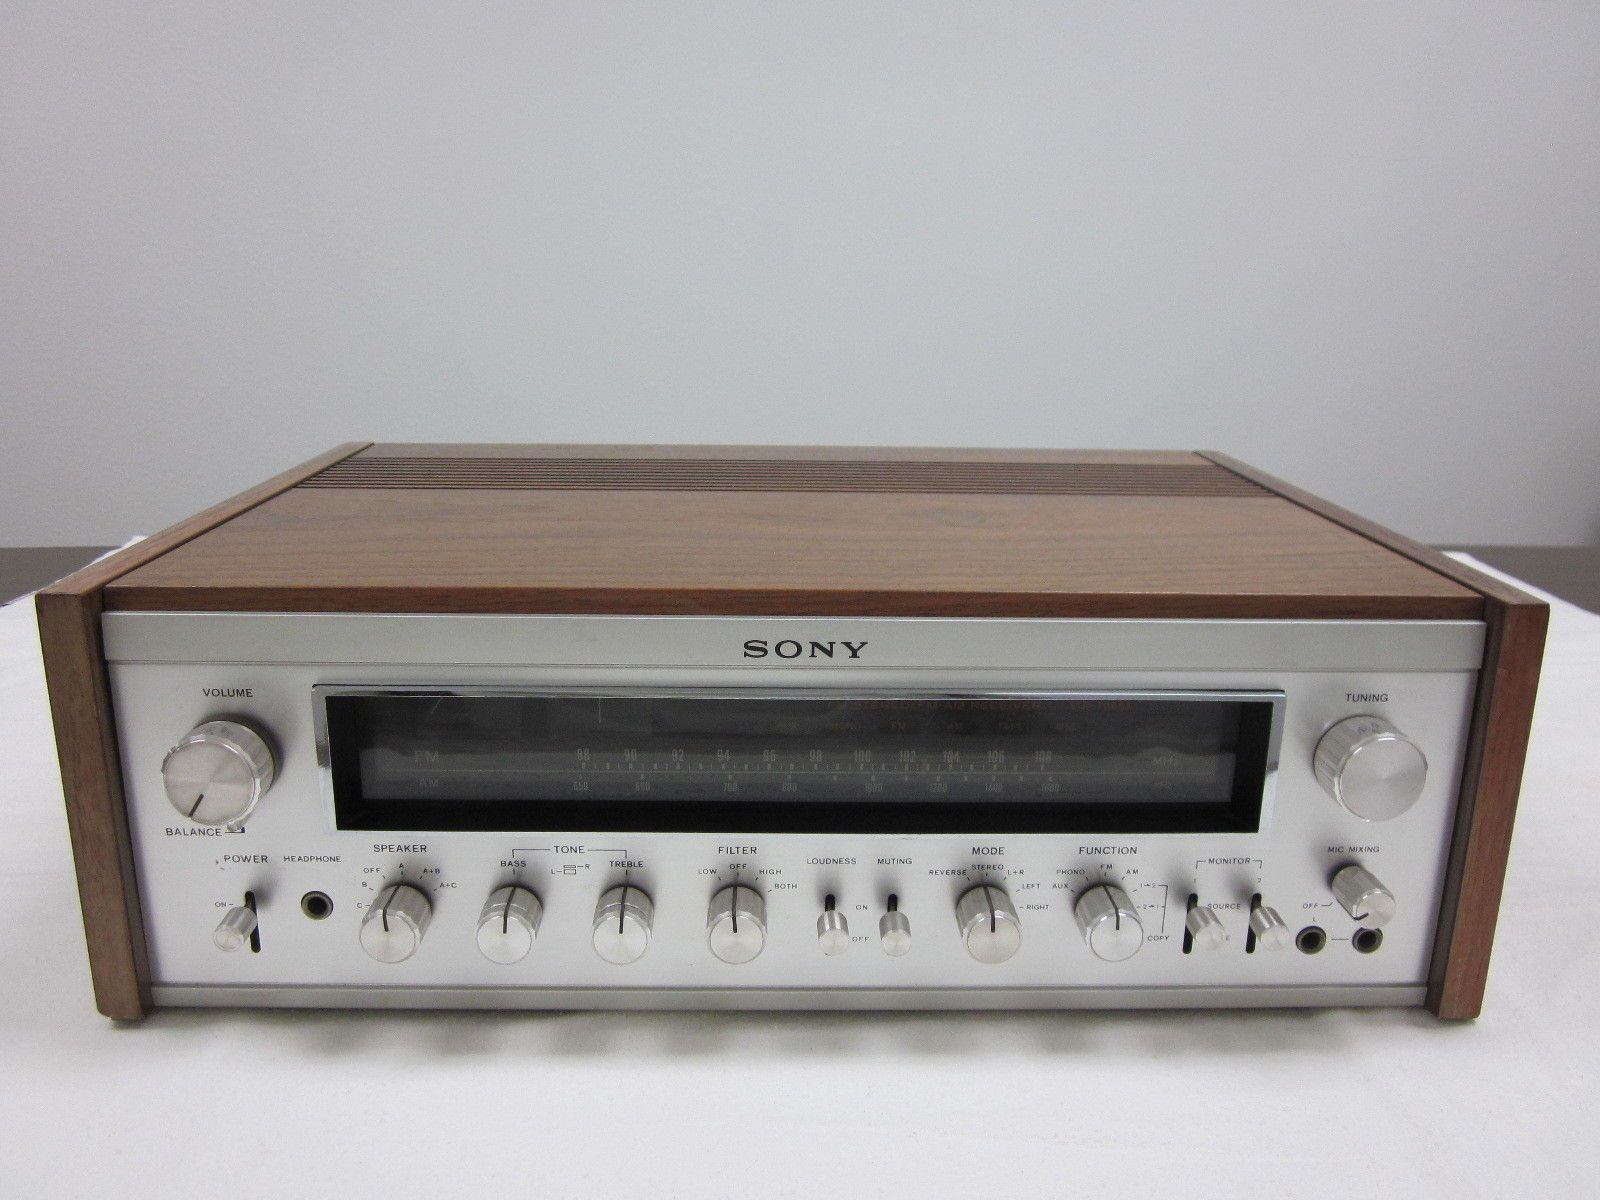 SONY STR-7065 7065A RECEIVER FRONT PANEL LAMPS.